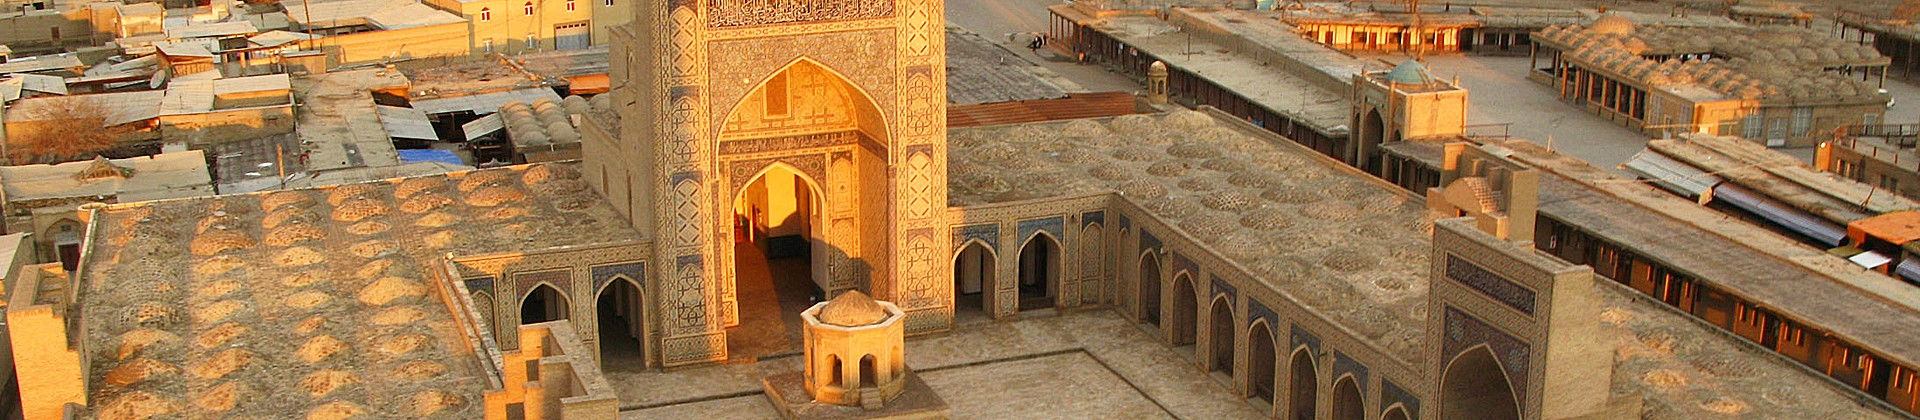 Guaranteed Departure Uzbekistan tour 2019 - 1